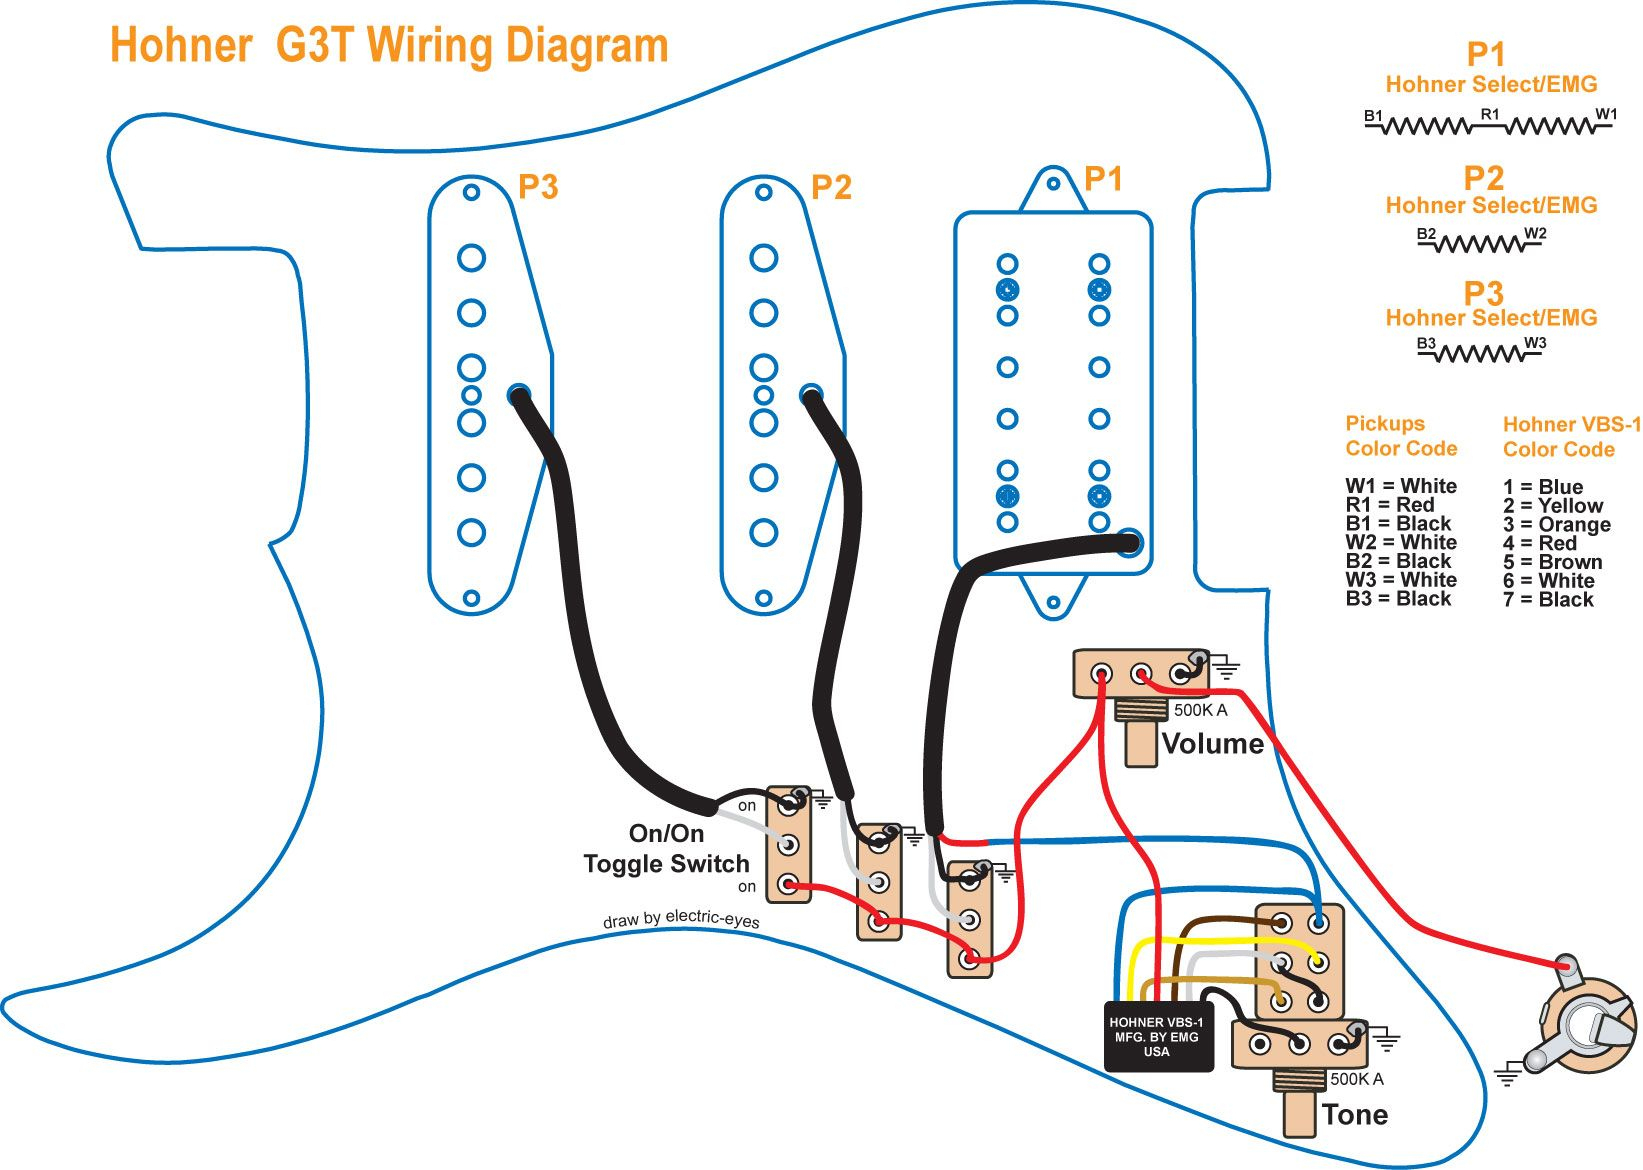 Wiring Diagram Of Electric Guitar - Wiring Diagram Detailed - Electric Guitar Wiring Diagram